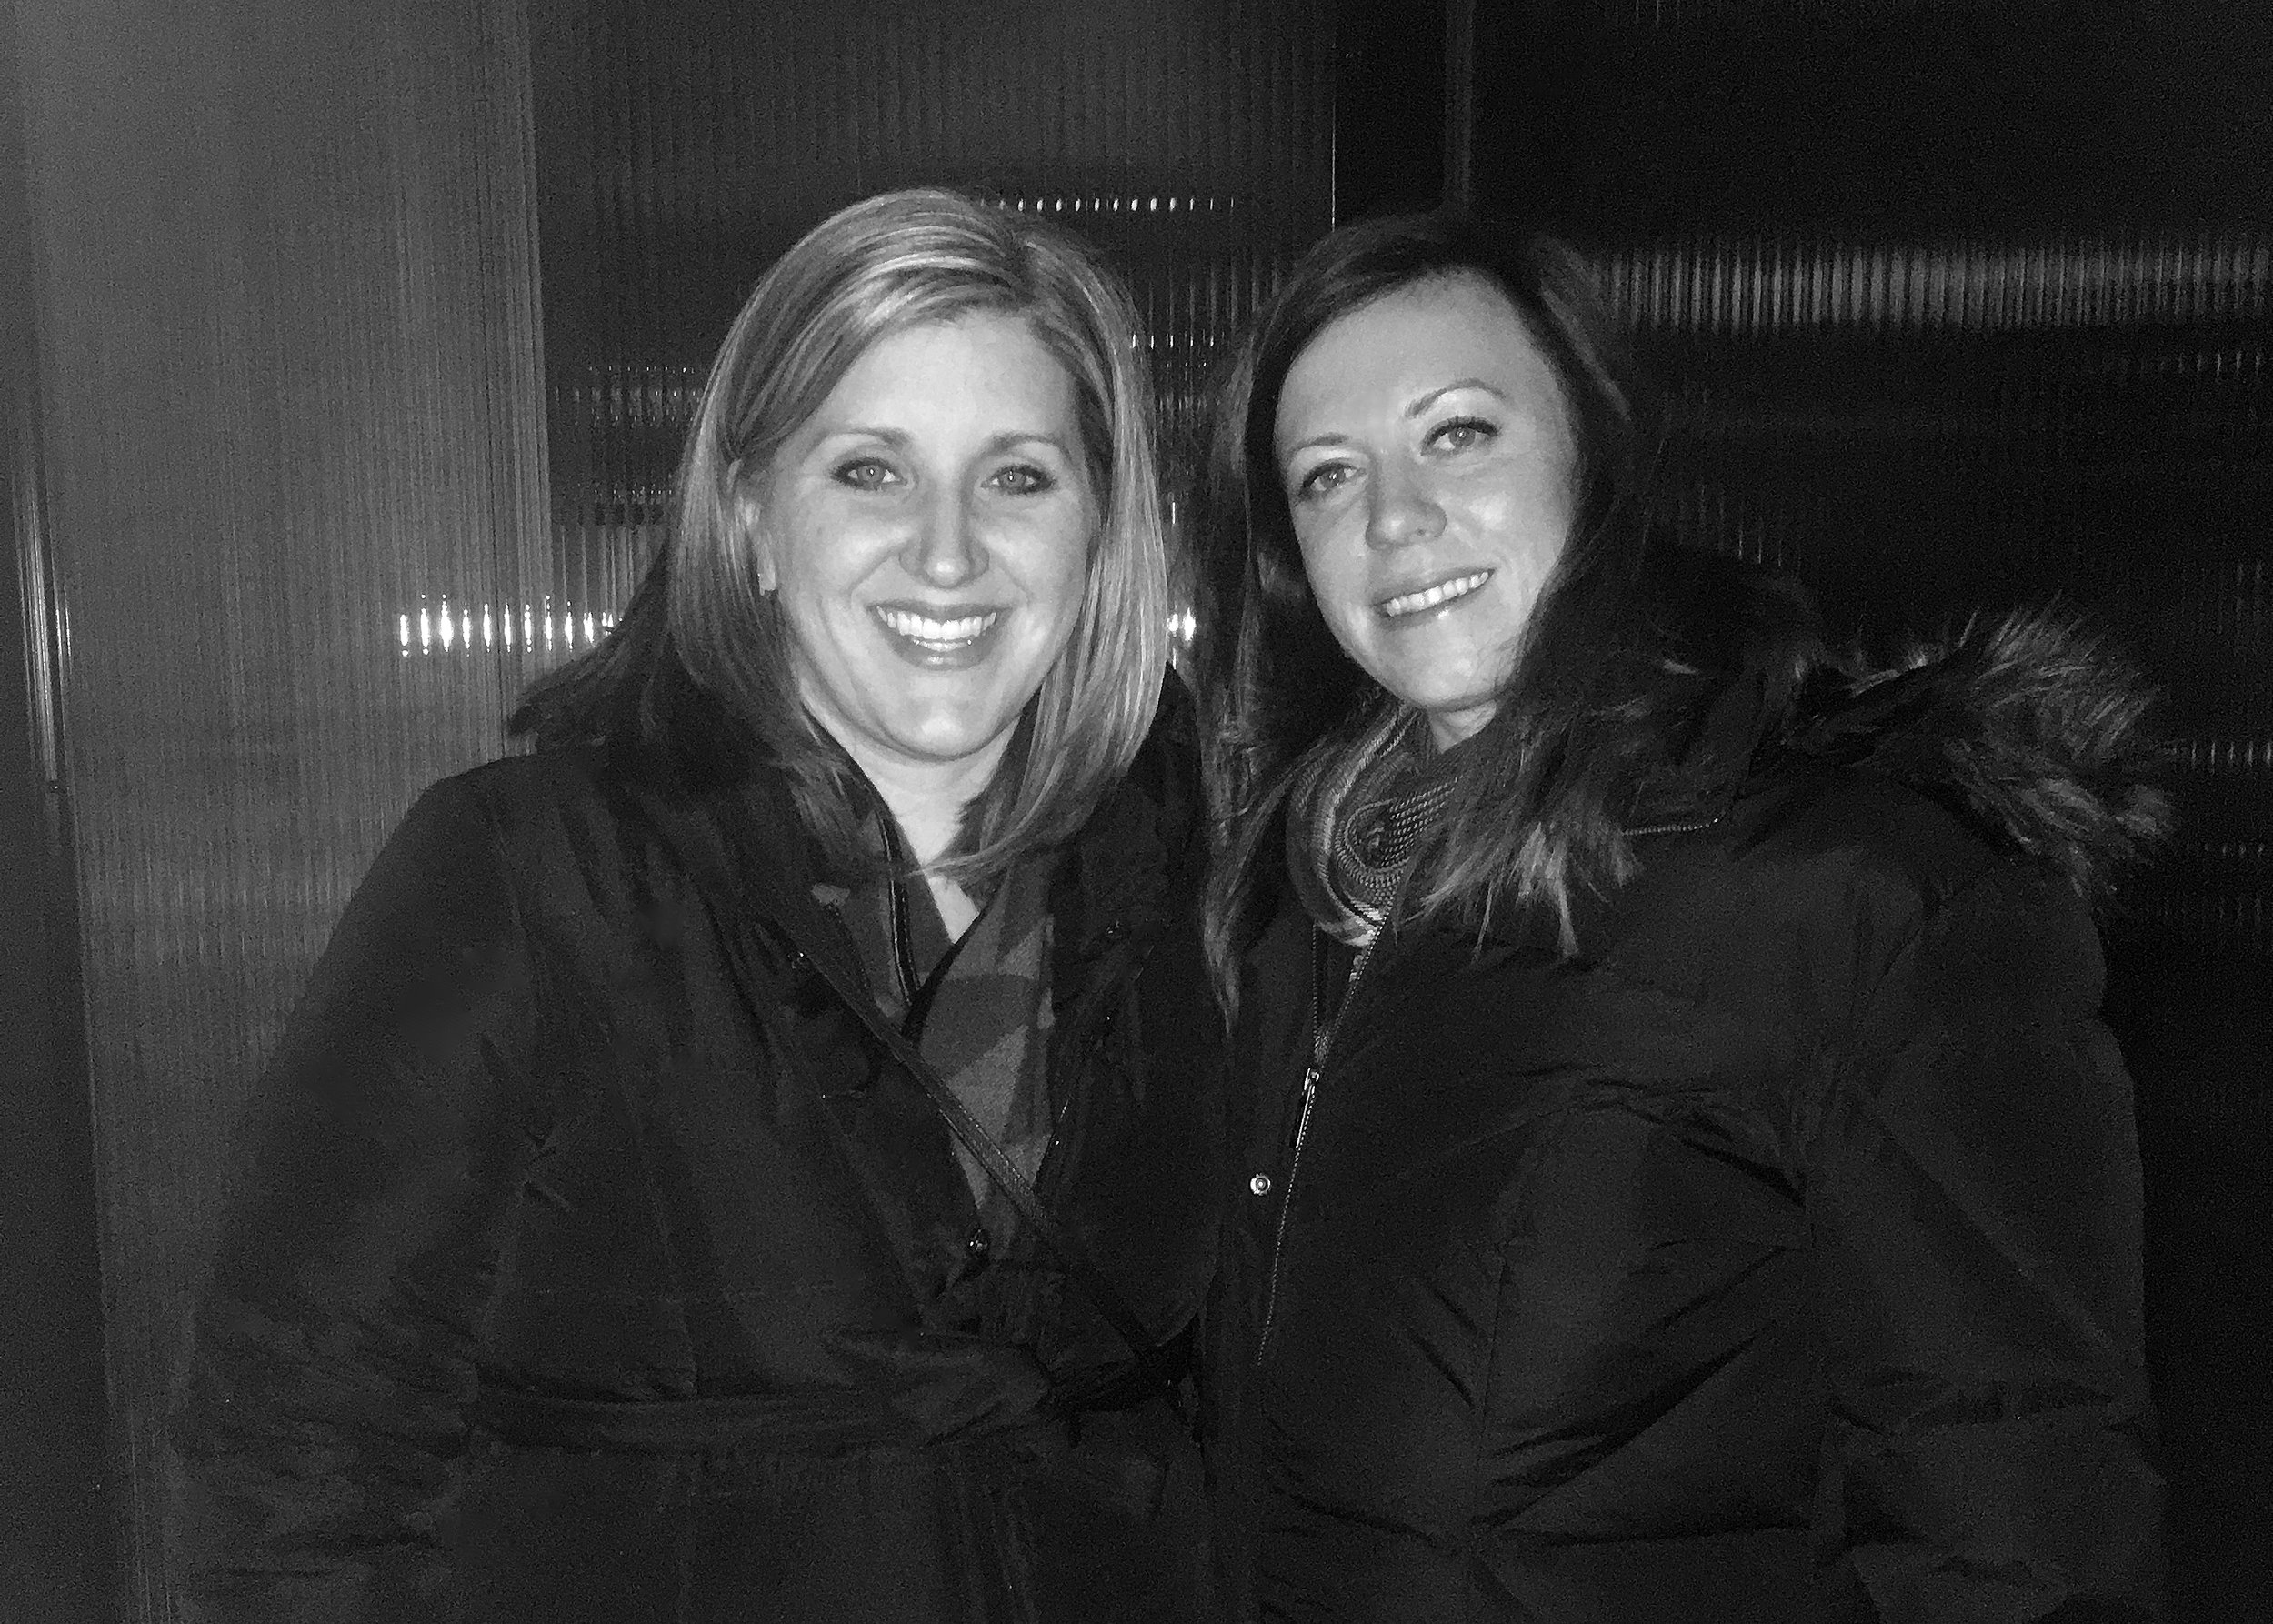 Callia Ball (Lighting Associates) and Lindsay head into Focal Point for a behind-the-scenes lighting tour!